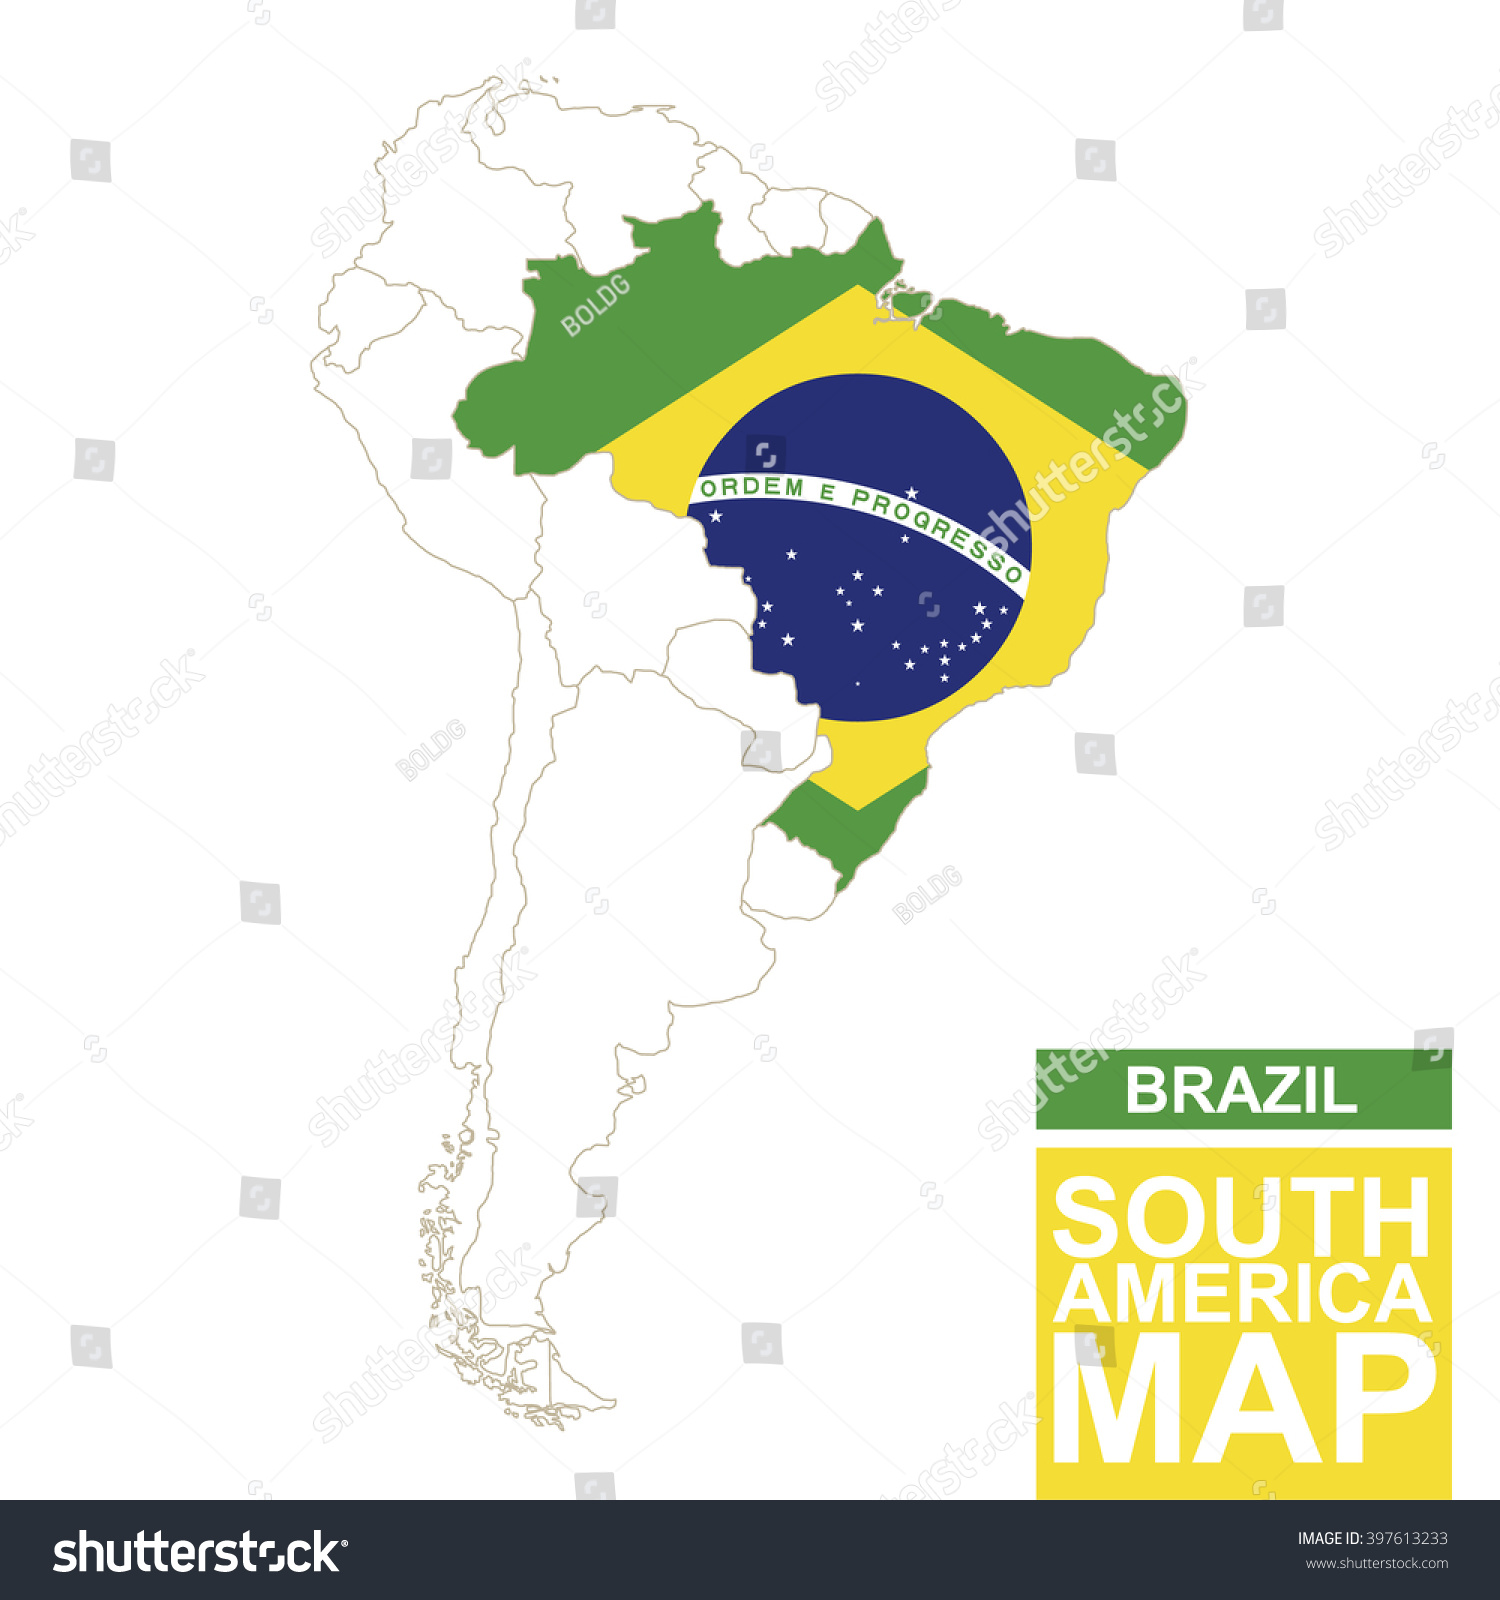 South America Contoured Map Highlighted Brazil Stock Vector - South america map and flags